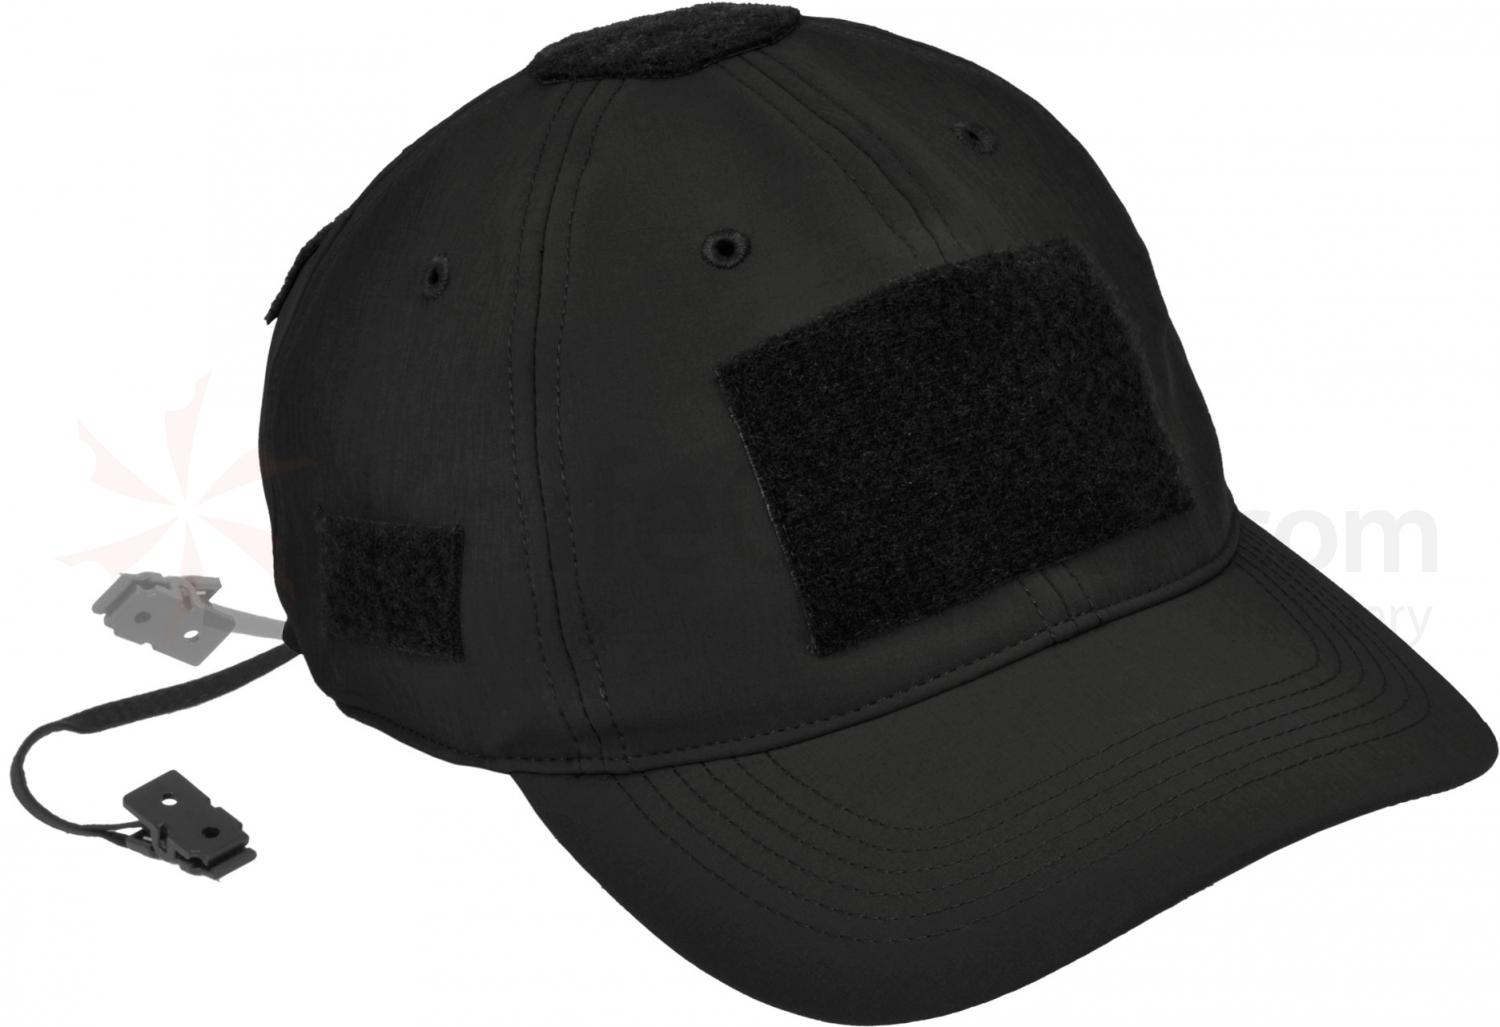 Hazard 4 PMC SmartSkin Softshell Breathable Contractor Ball Cap, Black